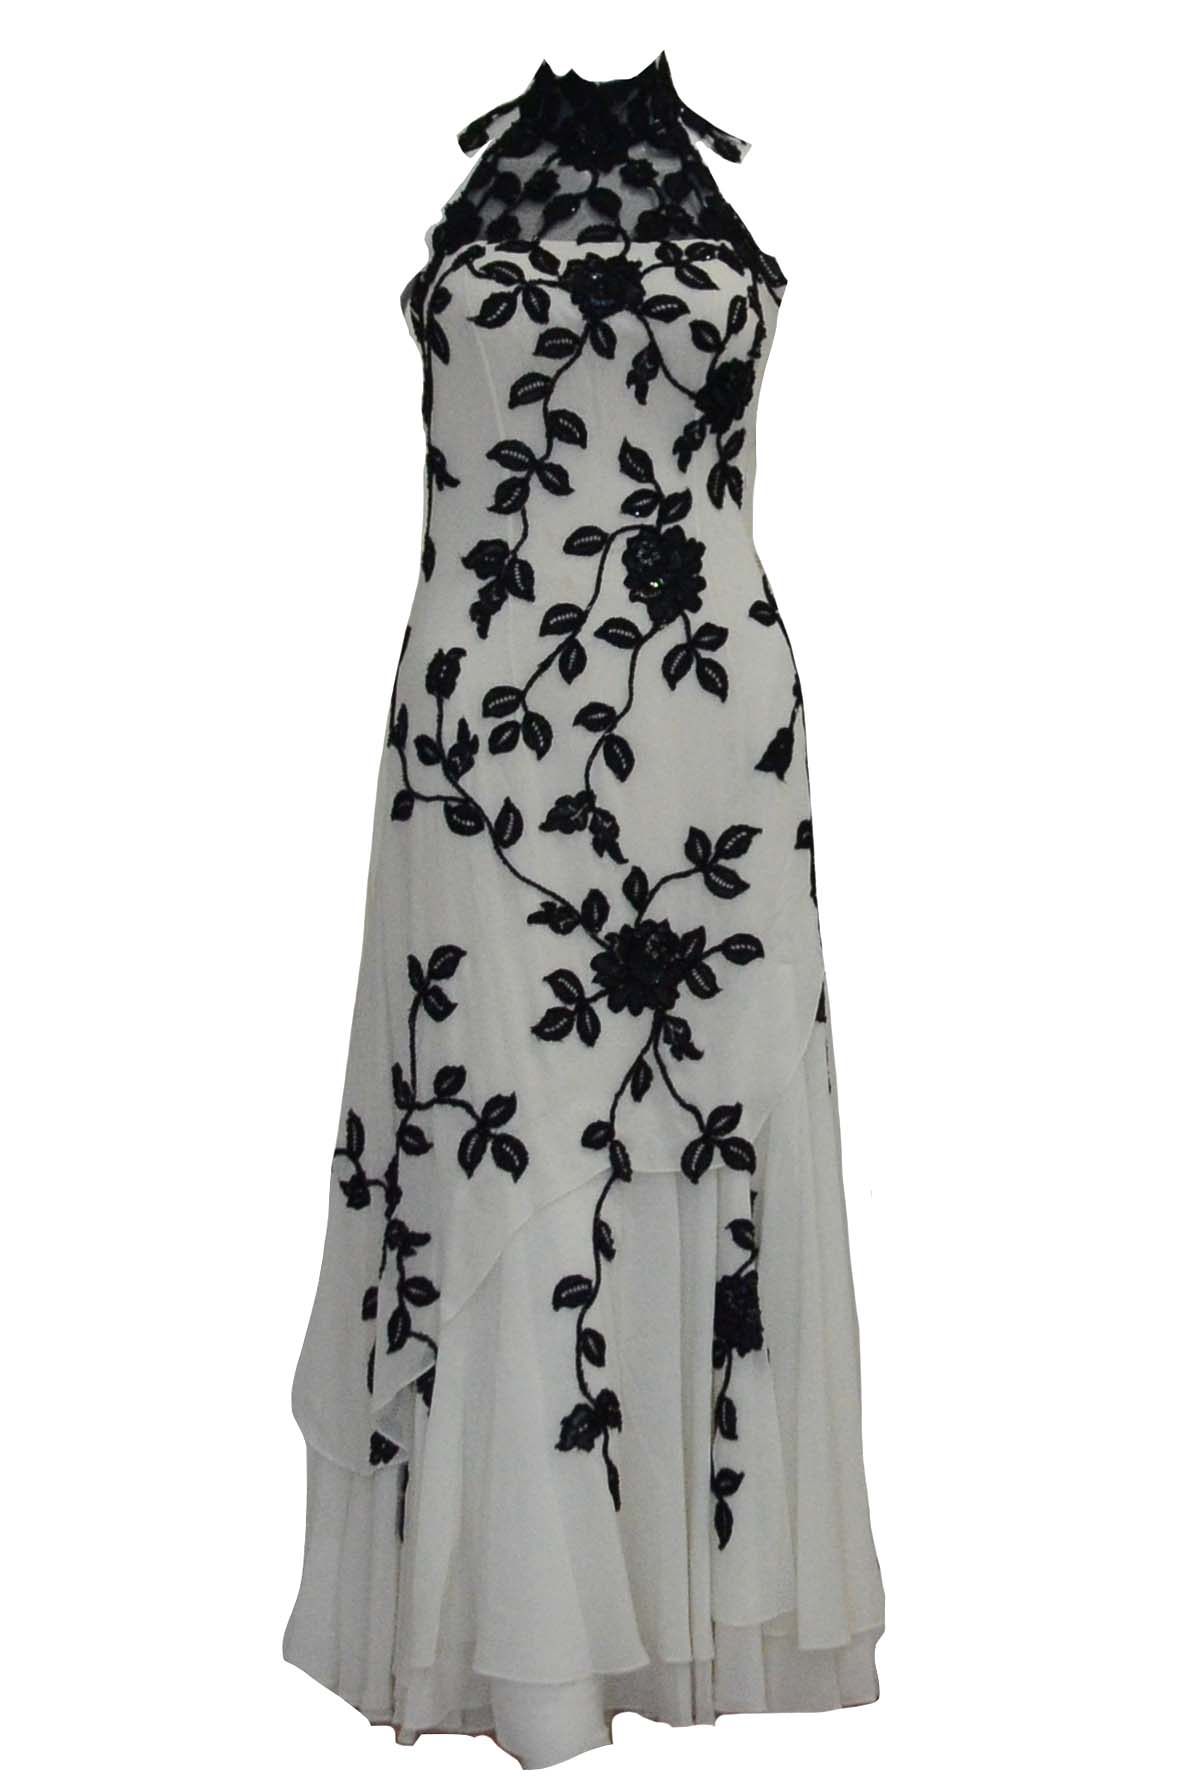 Rent : Private Label - Black White Halter Cheongsam Dress